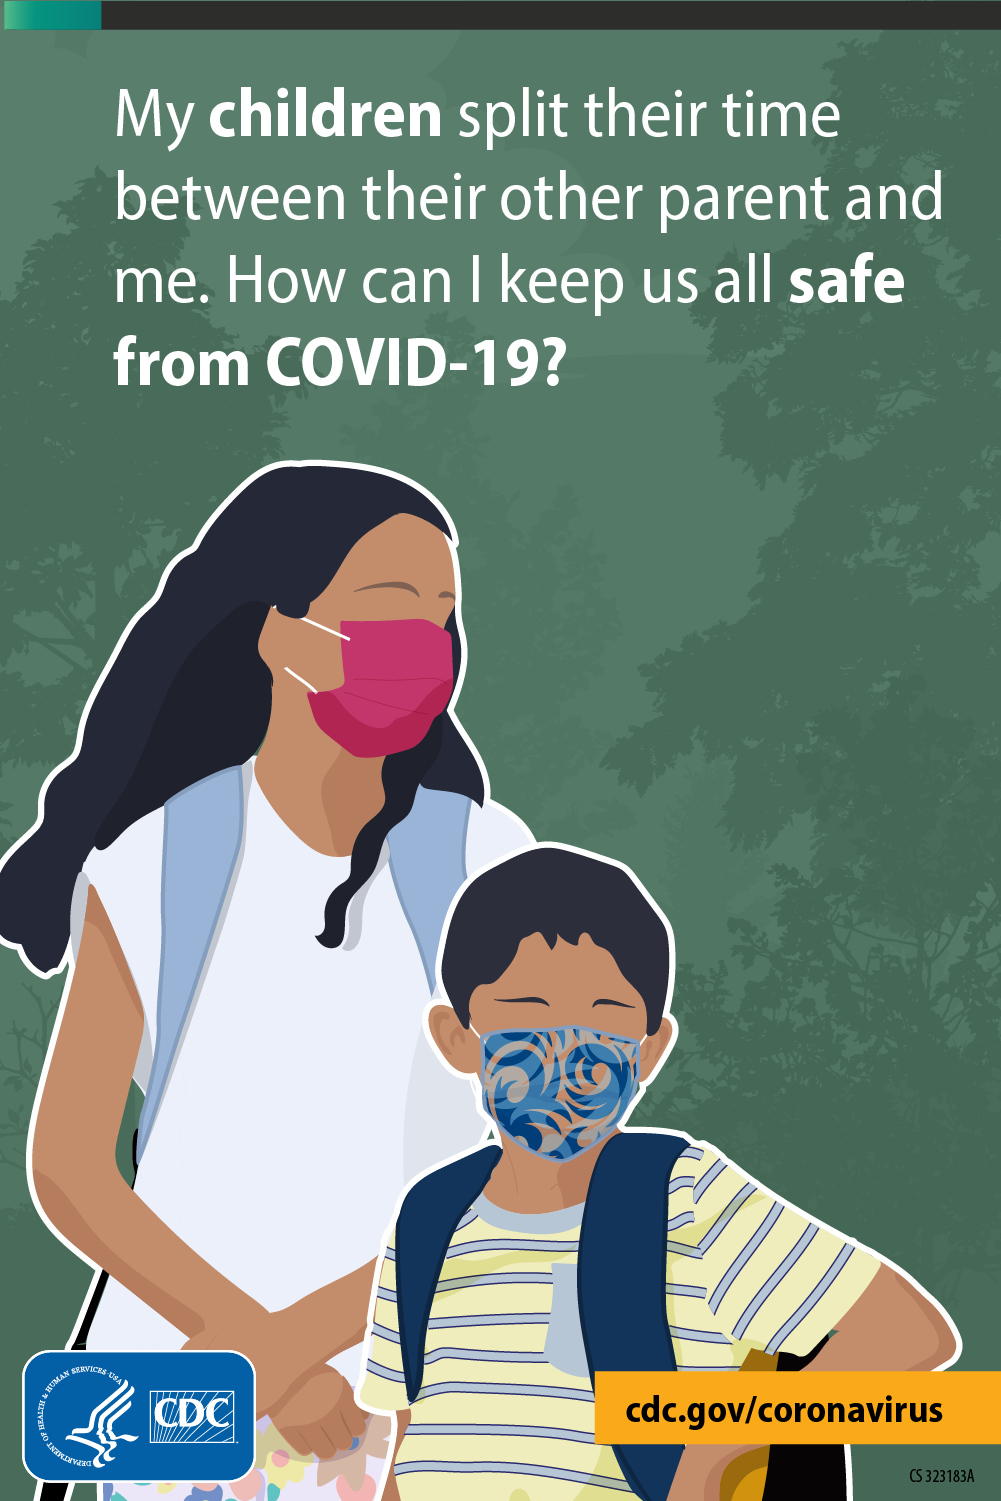 COVID-19 and Split Parenting